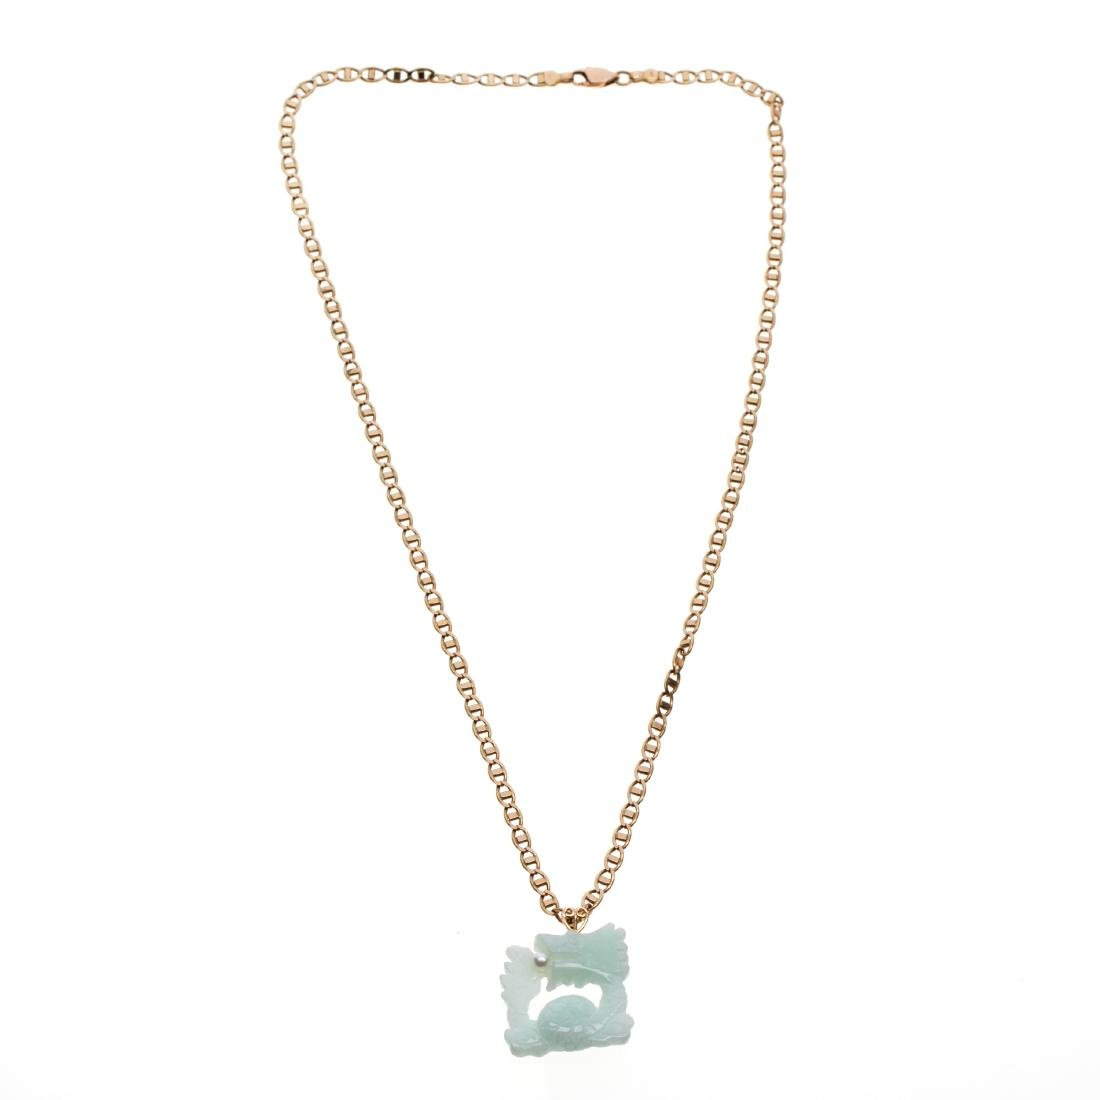 A jade, cultured pearl, 14k yellow gold necklace - 2